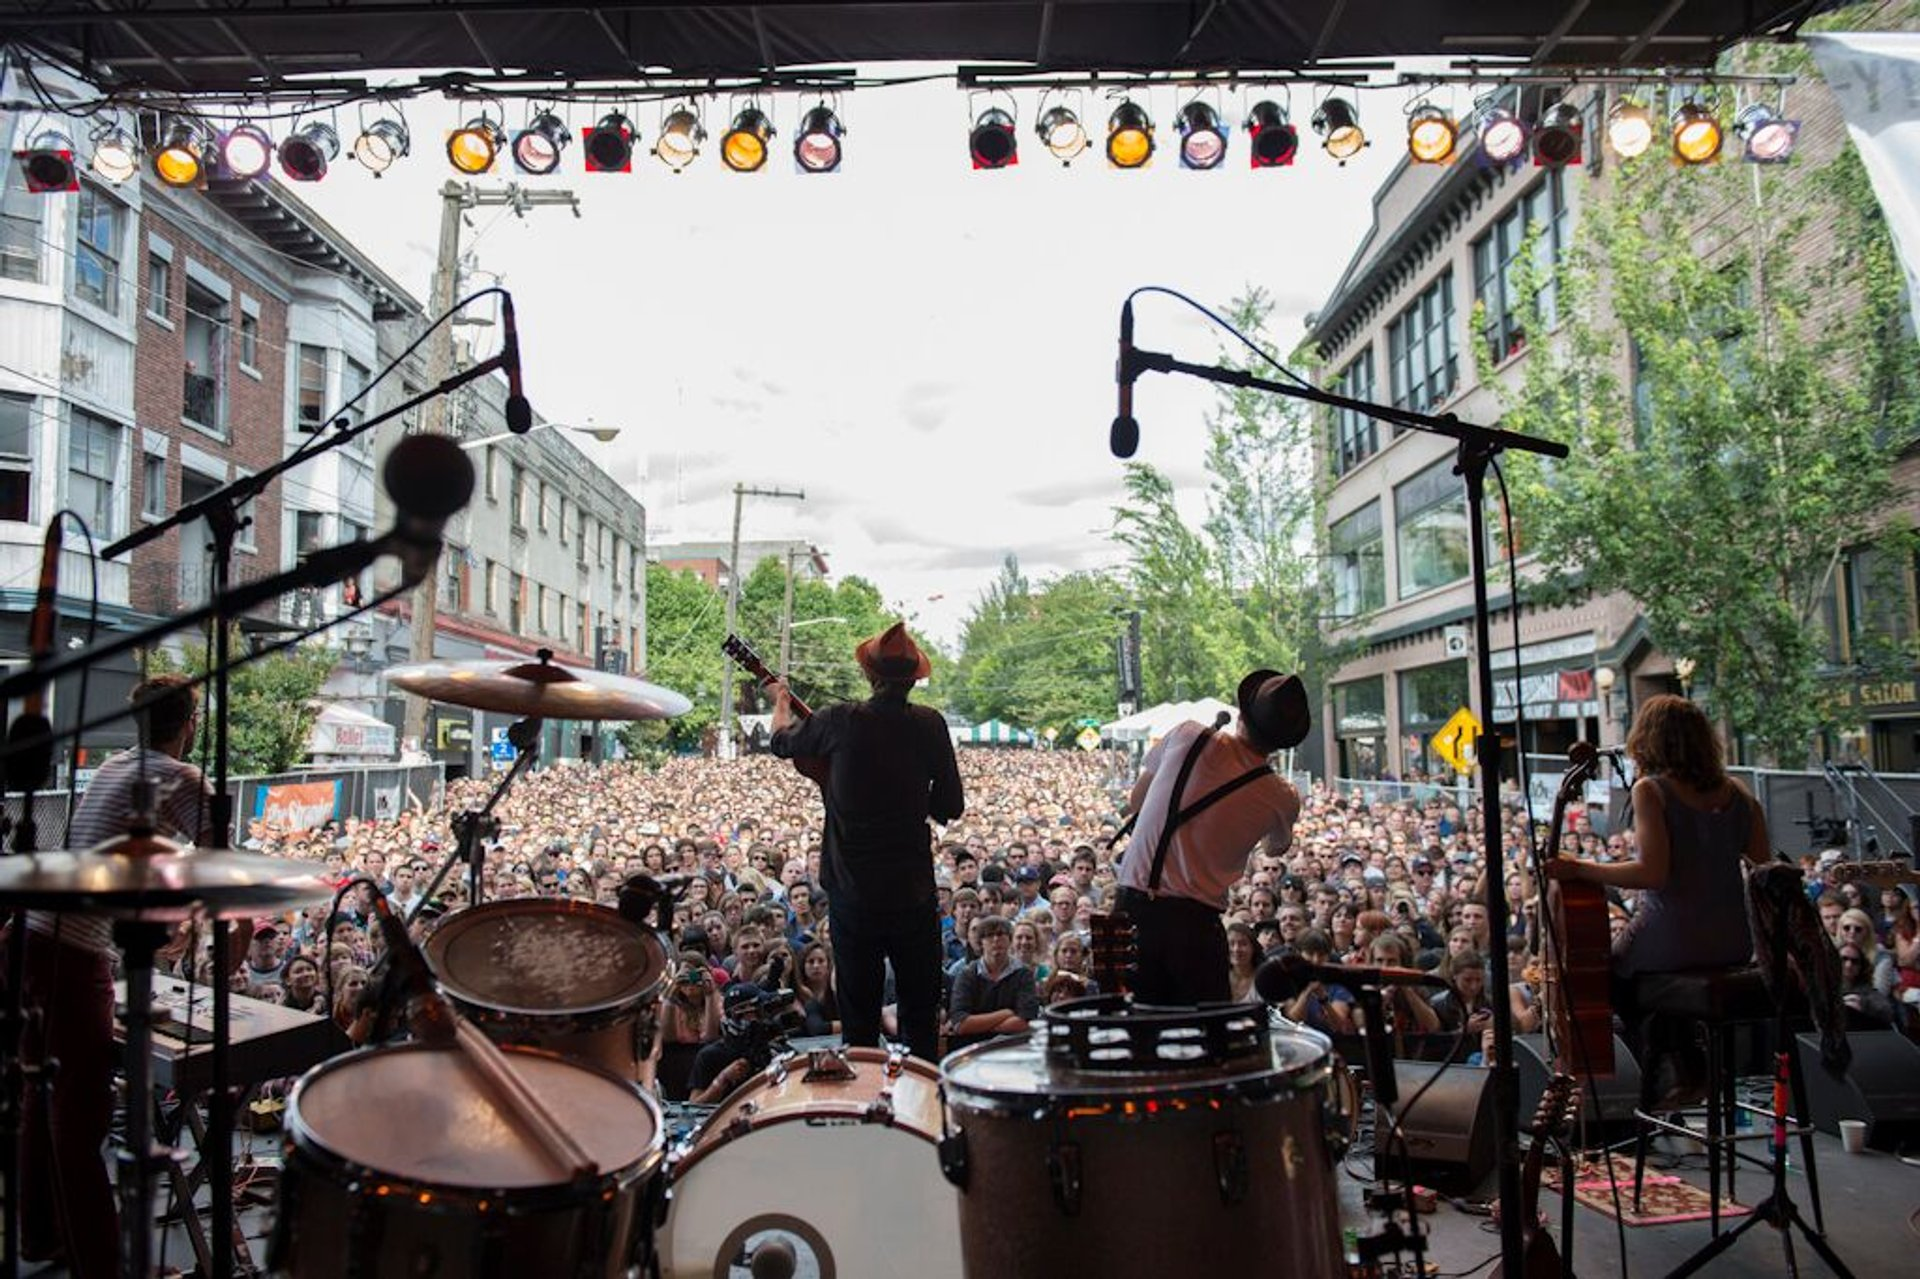 Capitol Hill Block Party in Seattle 2020 - Best Time